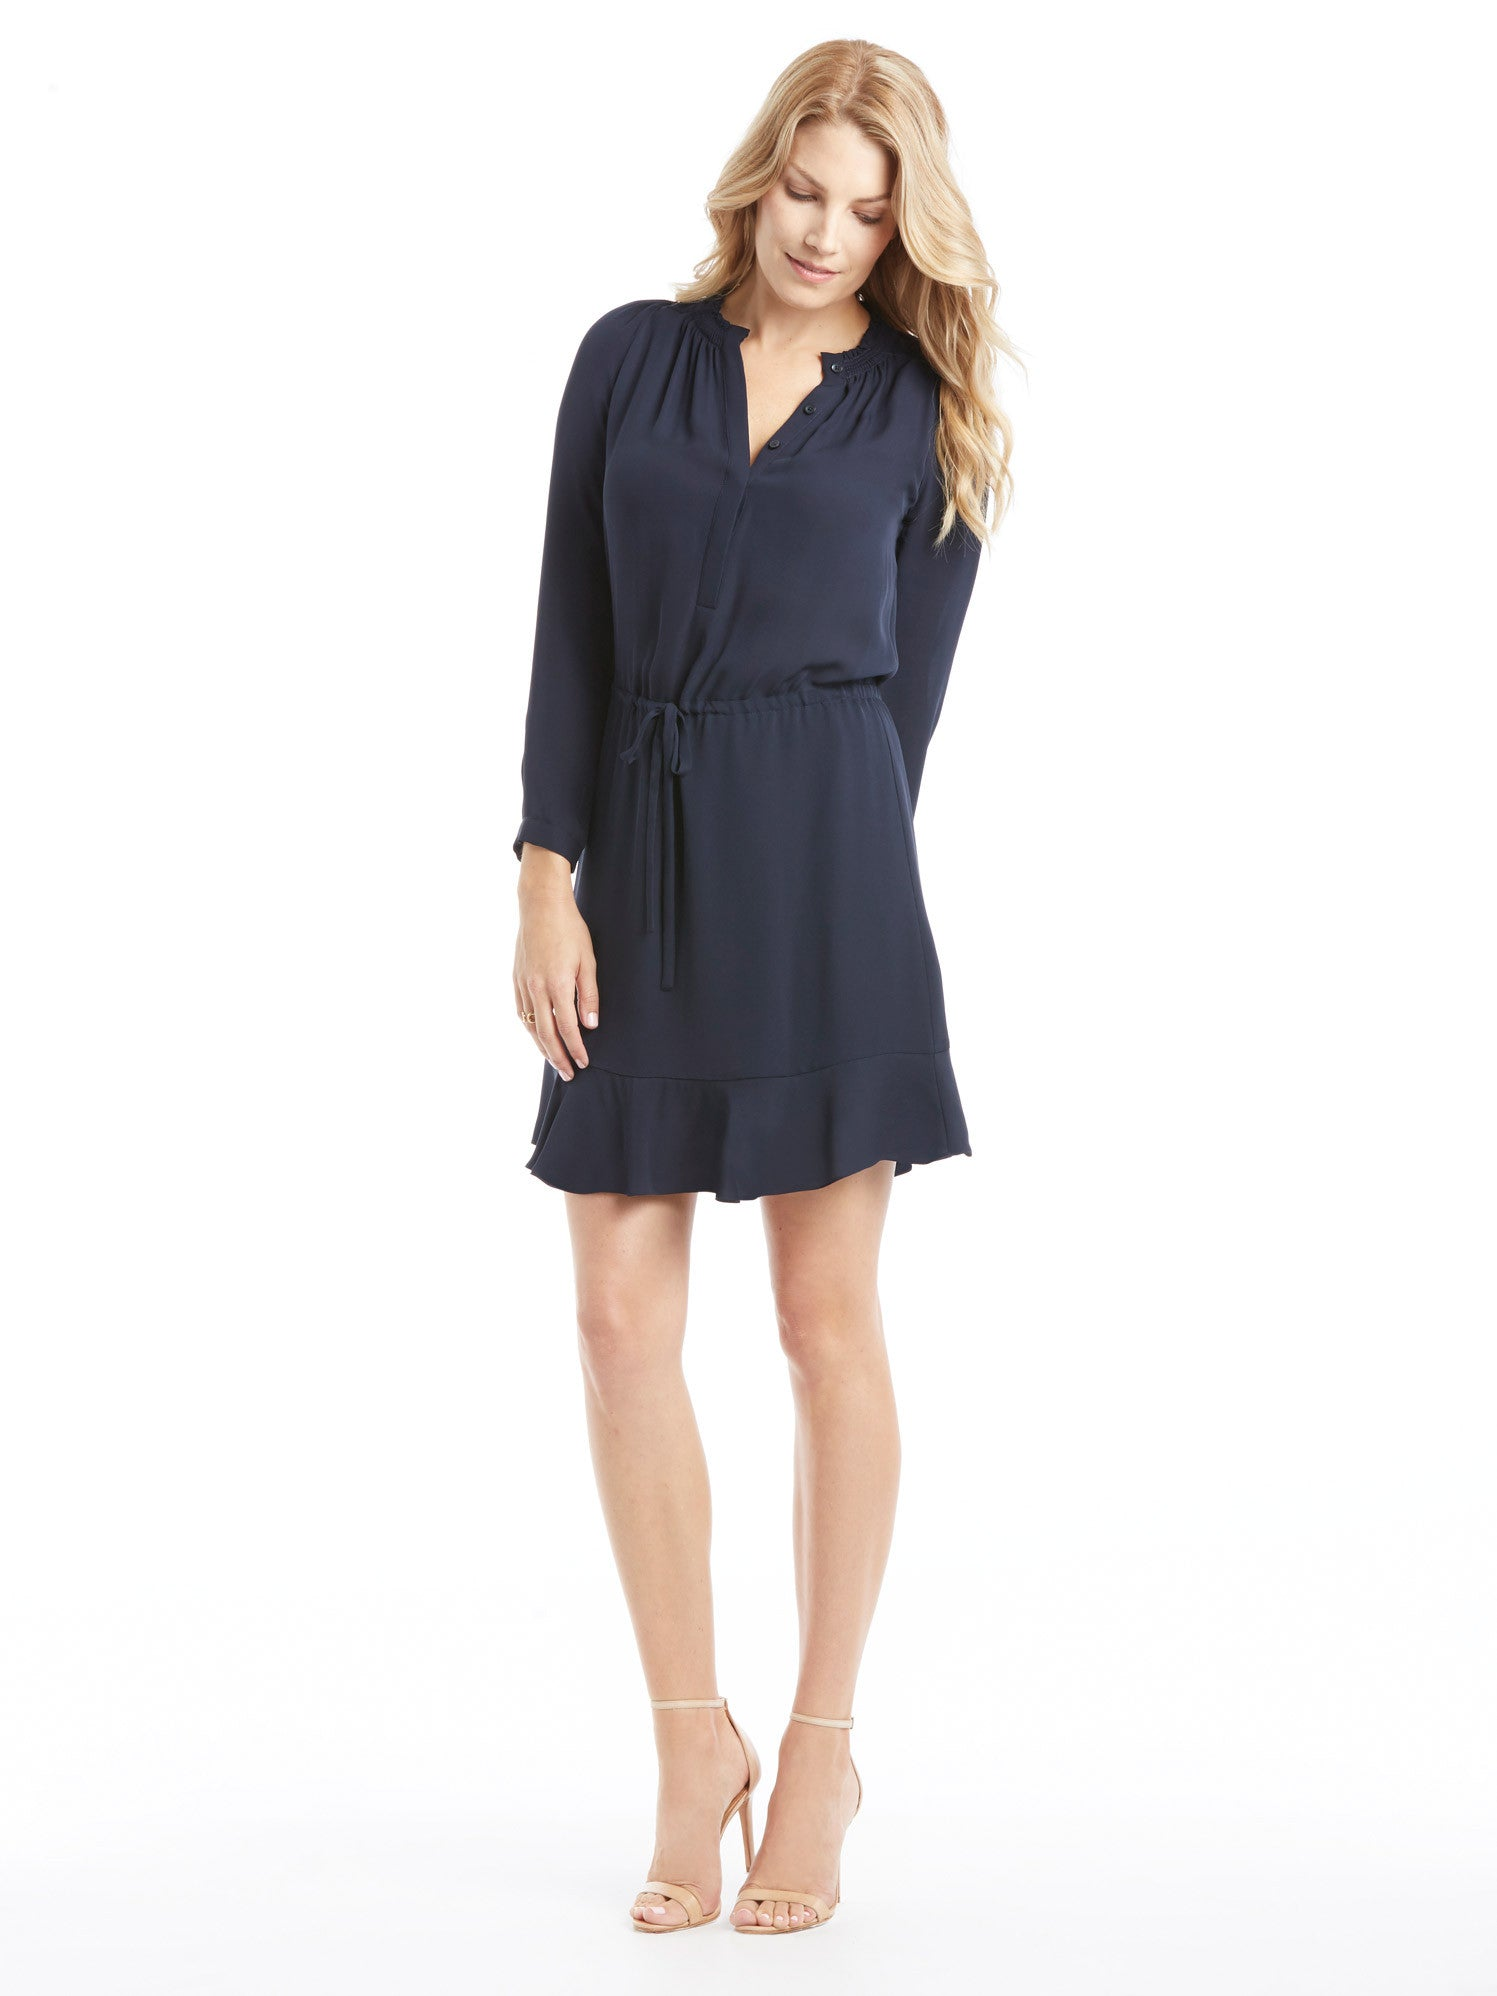 TILDEN | Rebecca Taylor Long Sleeve Navy Silk Dress